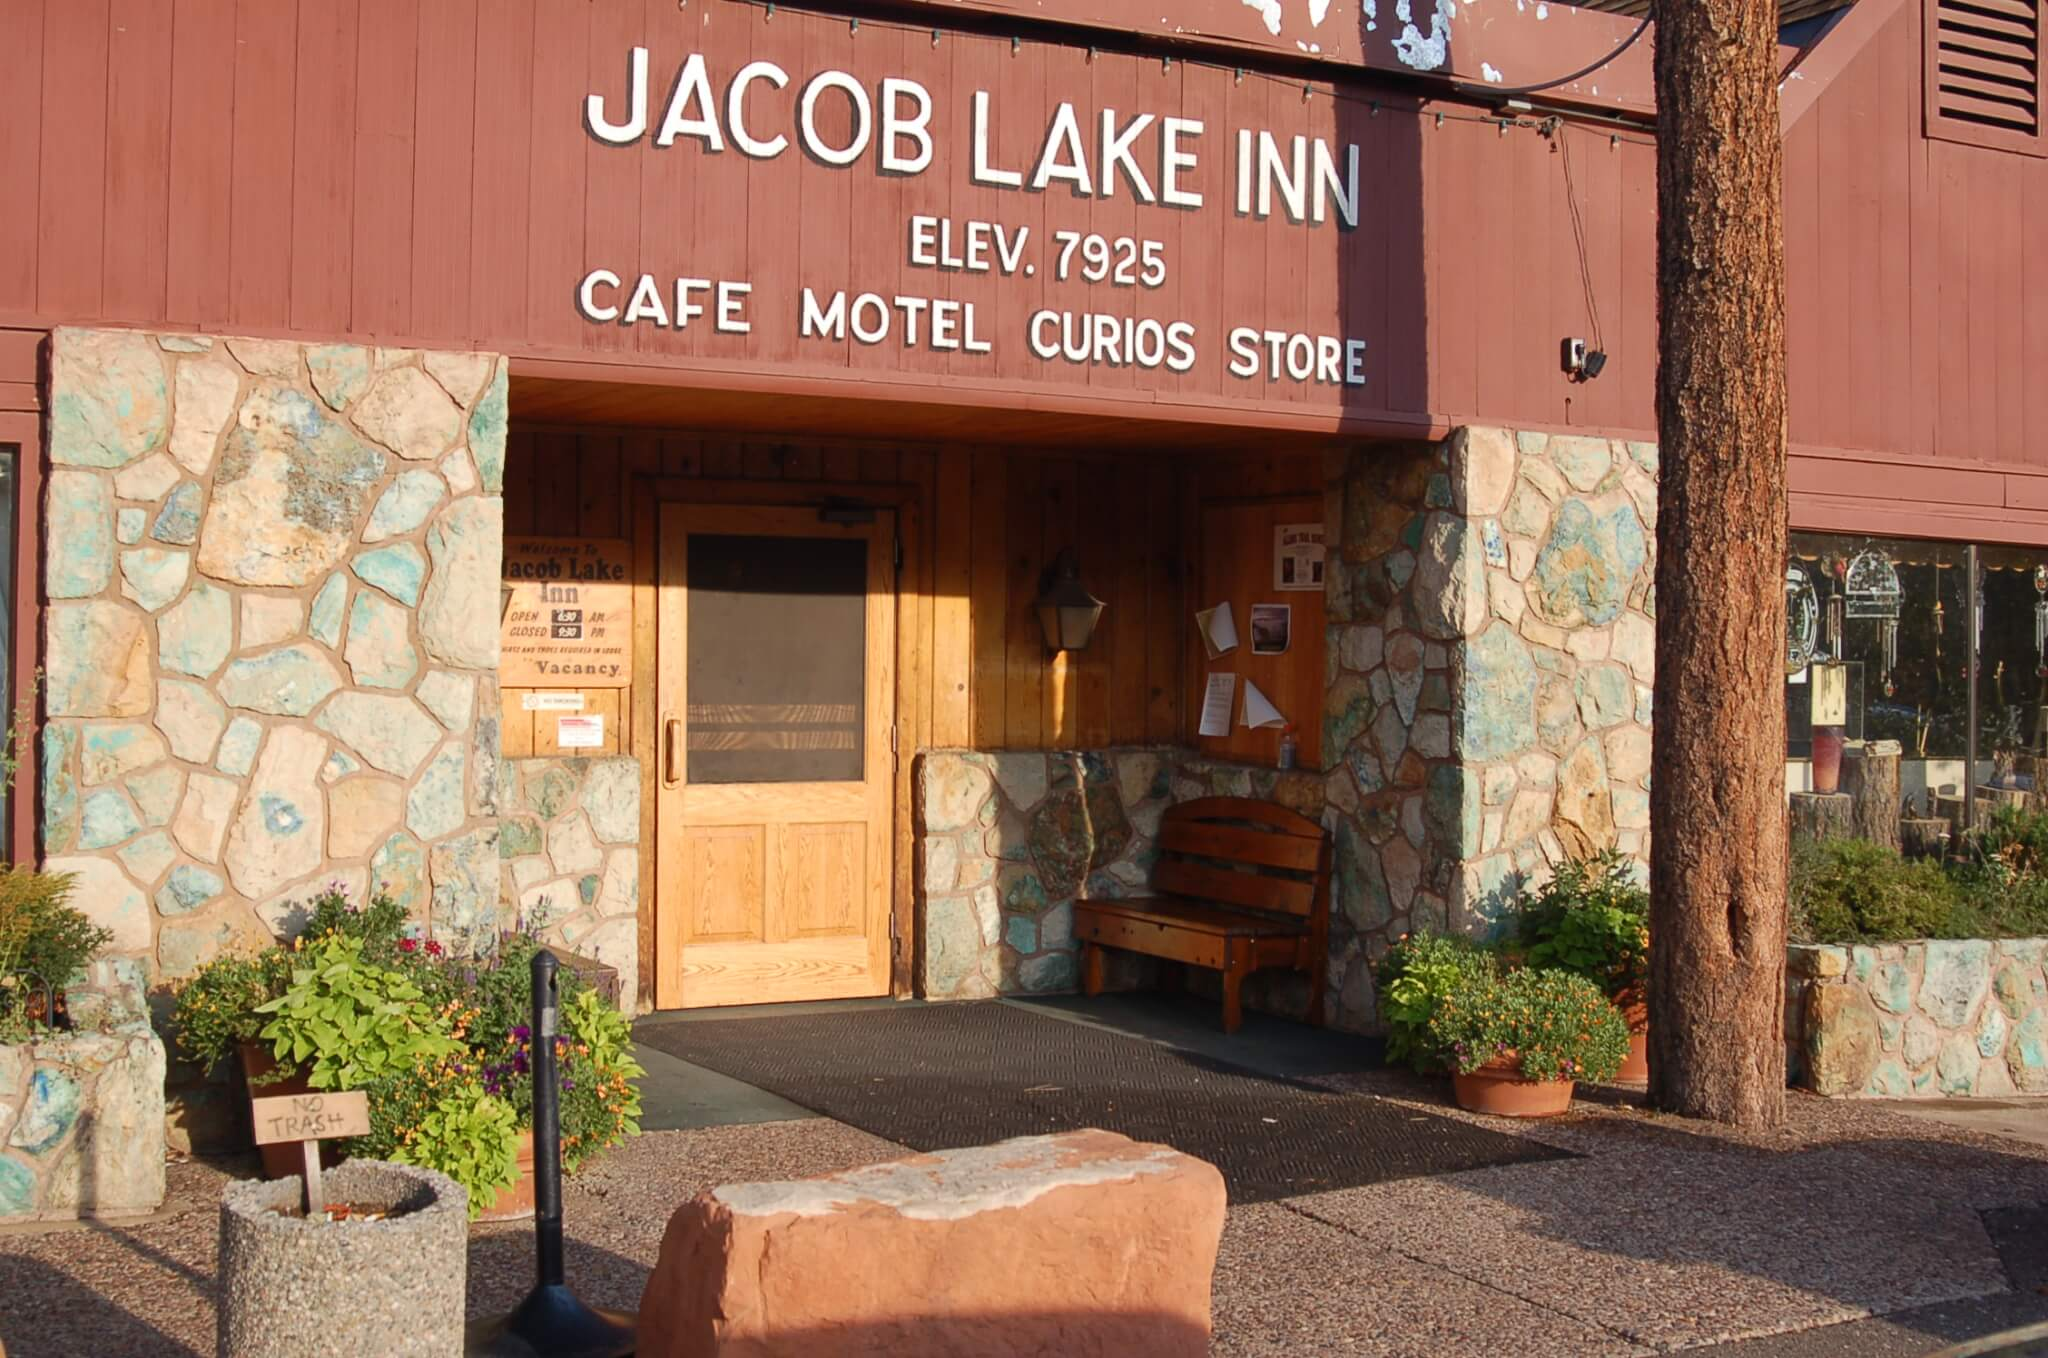 Grand Canyon National Park Area Campgrounds-Jacob_Lake_Inn